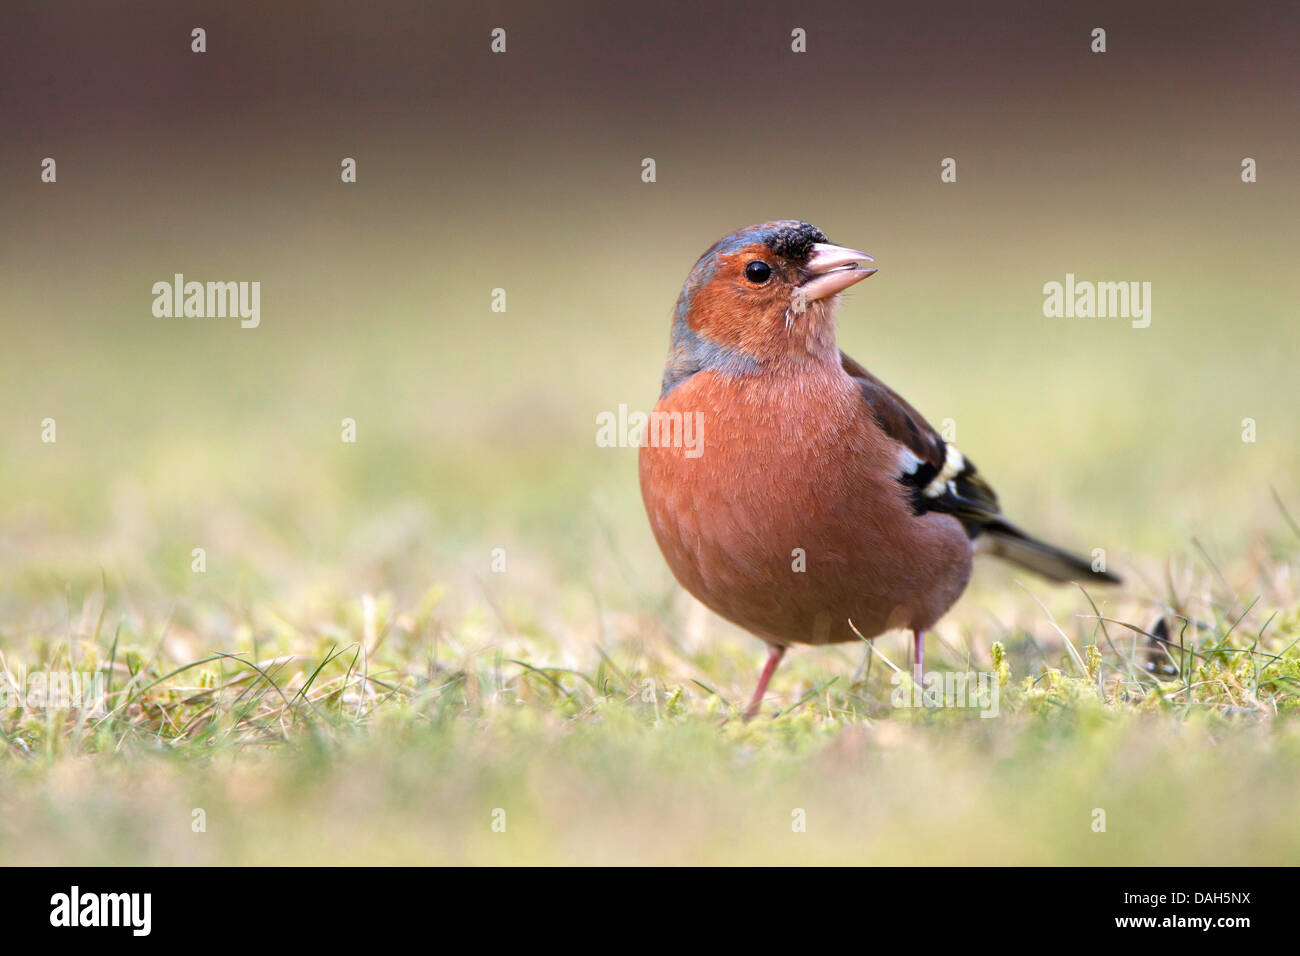 chaffinch (Fringilla coelebs), sitting in a meadow and feeding, Belgium - Stock Image